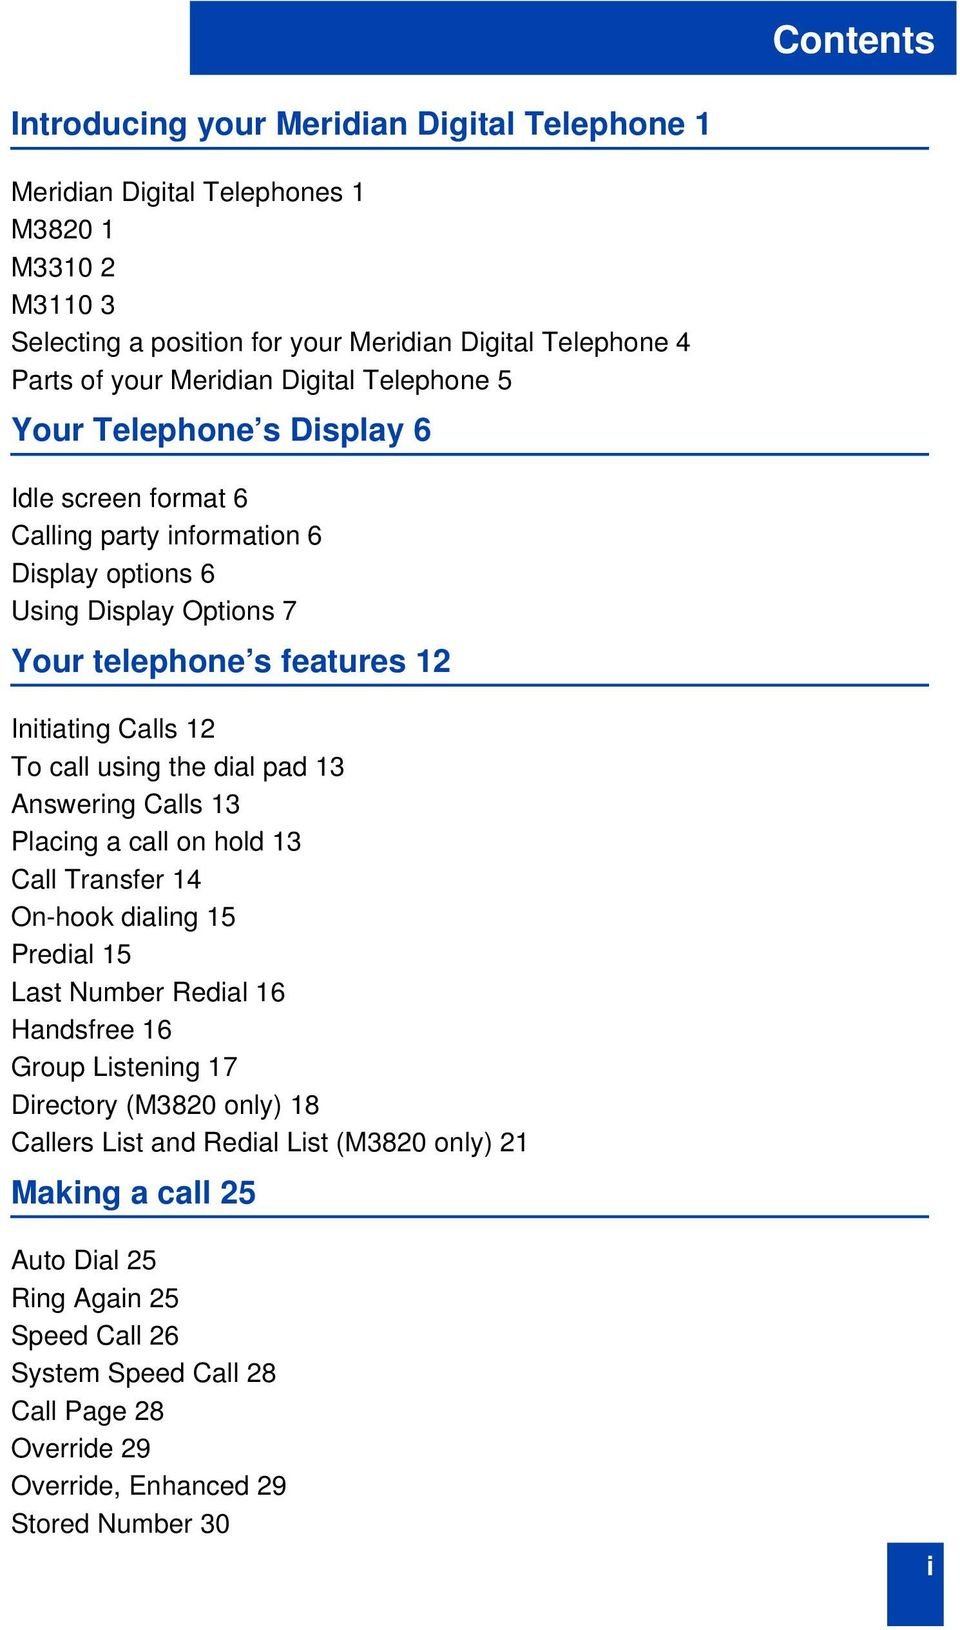 call using the dial pad 13 Answering Calls 13 Placing a call on hold 13 Call Transfer 14 On-hook dialing 15 Predial 15 Last Number Redial 16 Handsfree 16 Group Listening 17 Directory (M3820